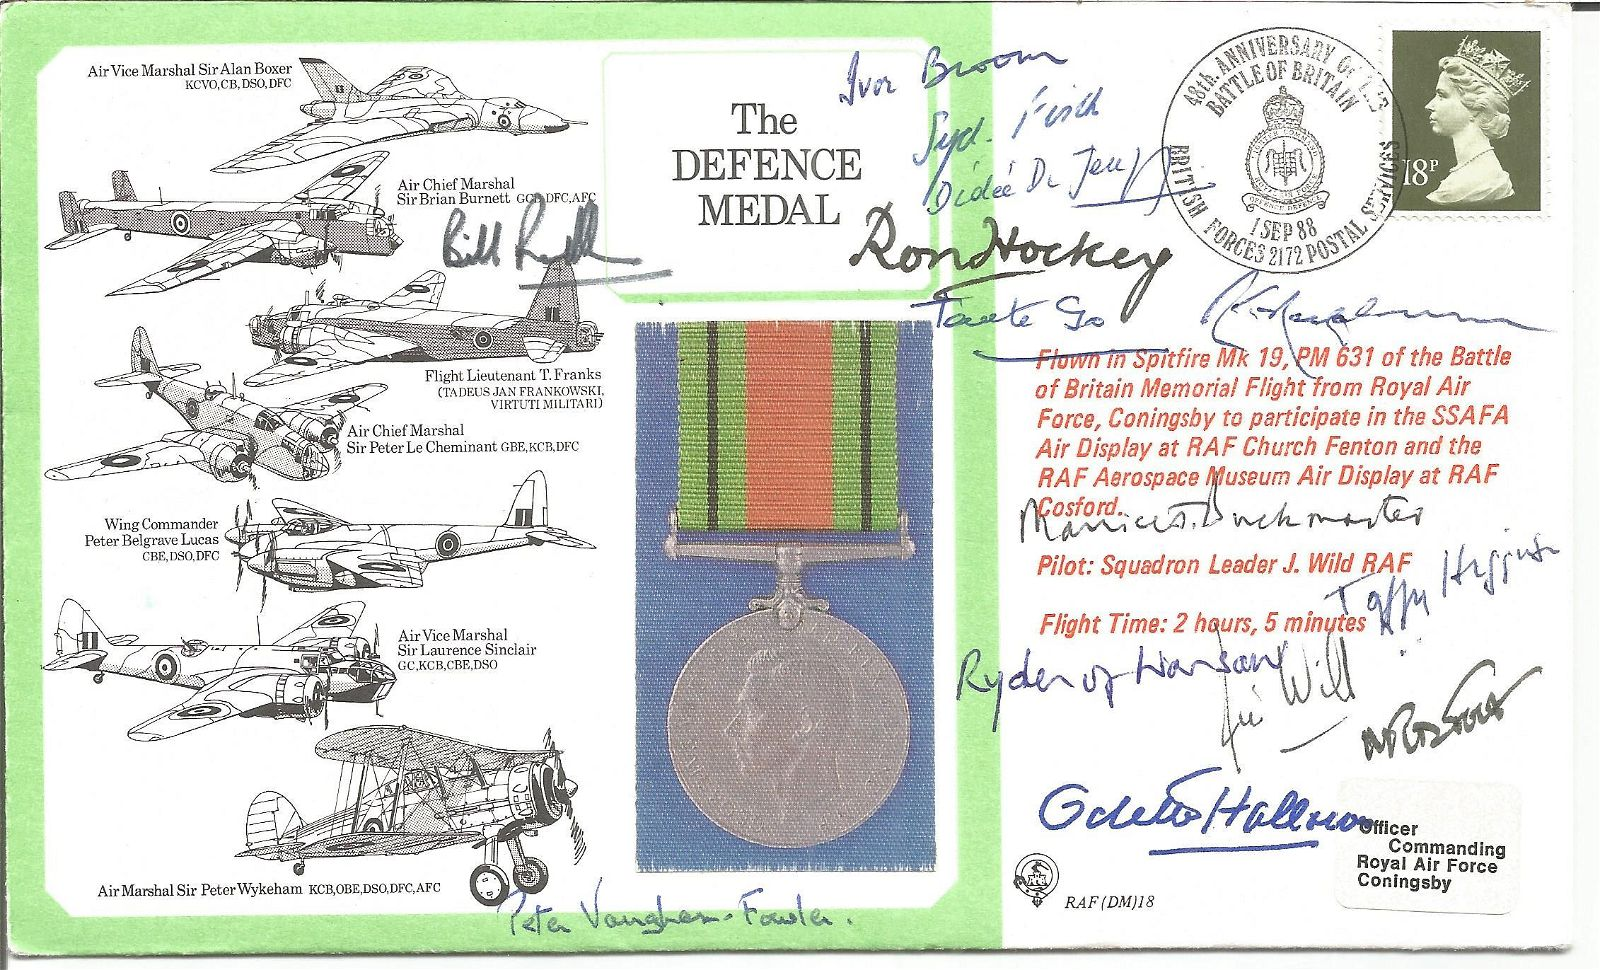 WW2 Rare multiple signed cover celebrating the Defence